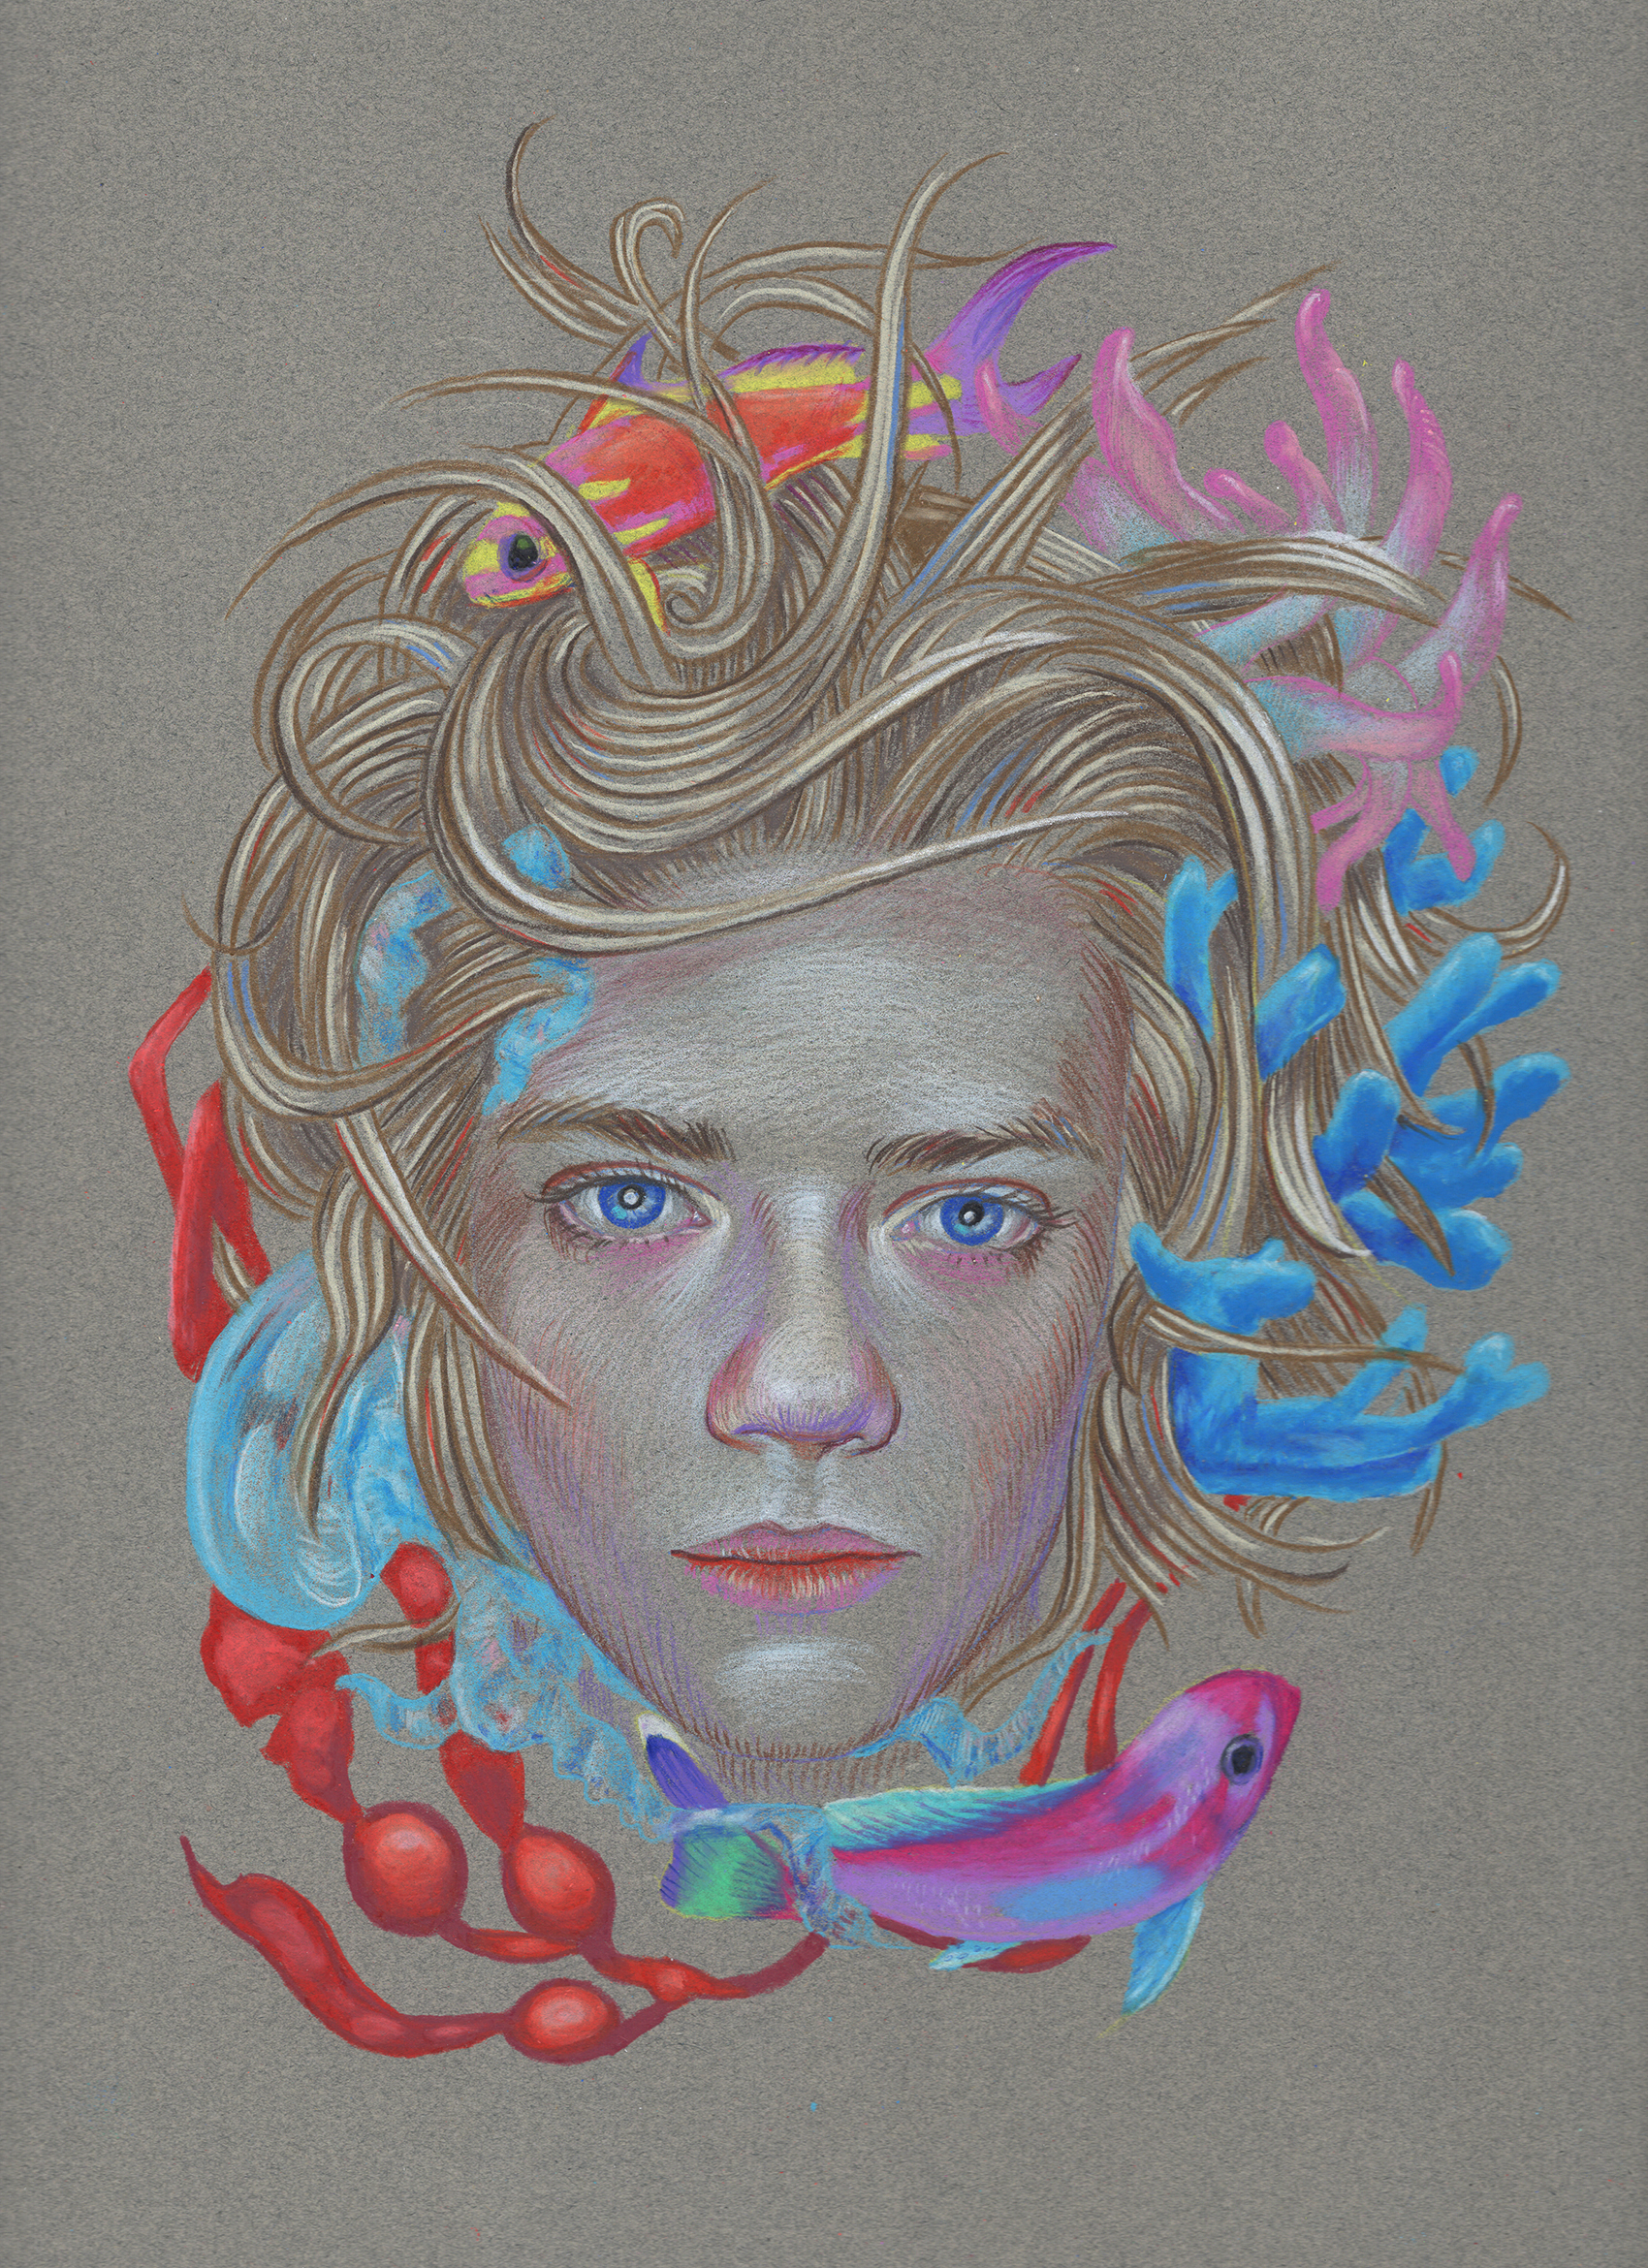 Untitled. Color pencil on paper. 12 x 9 inches.